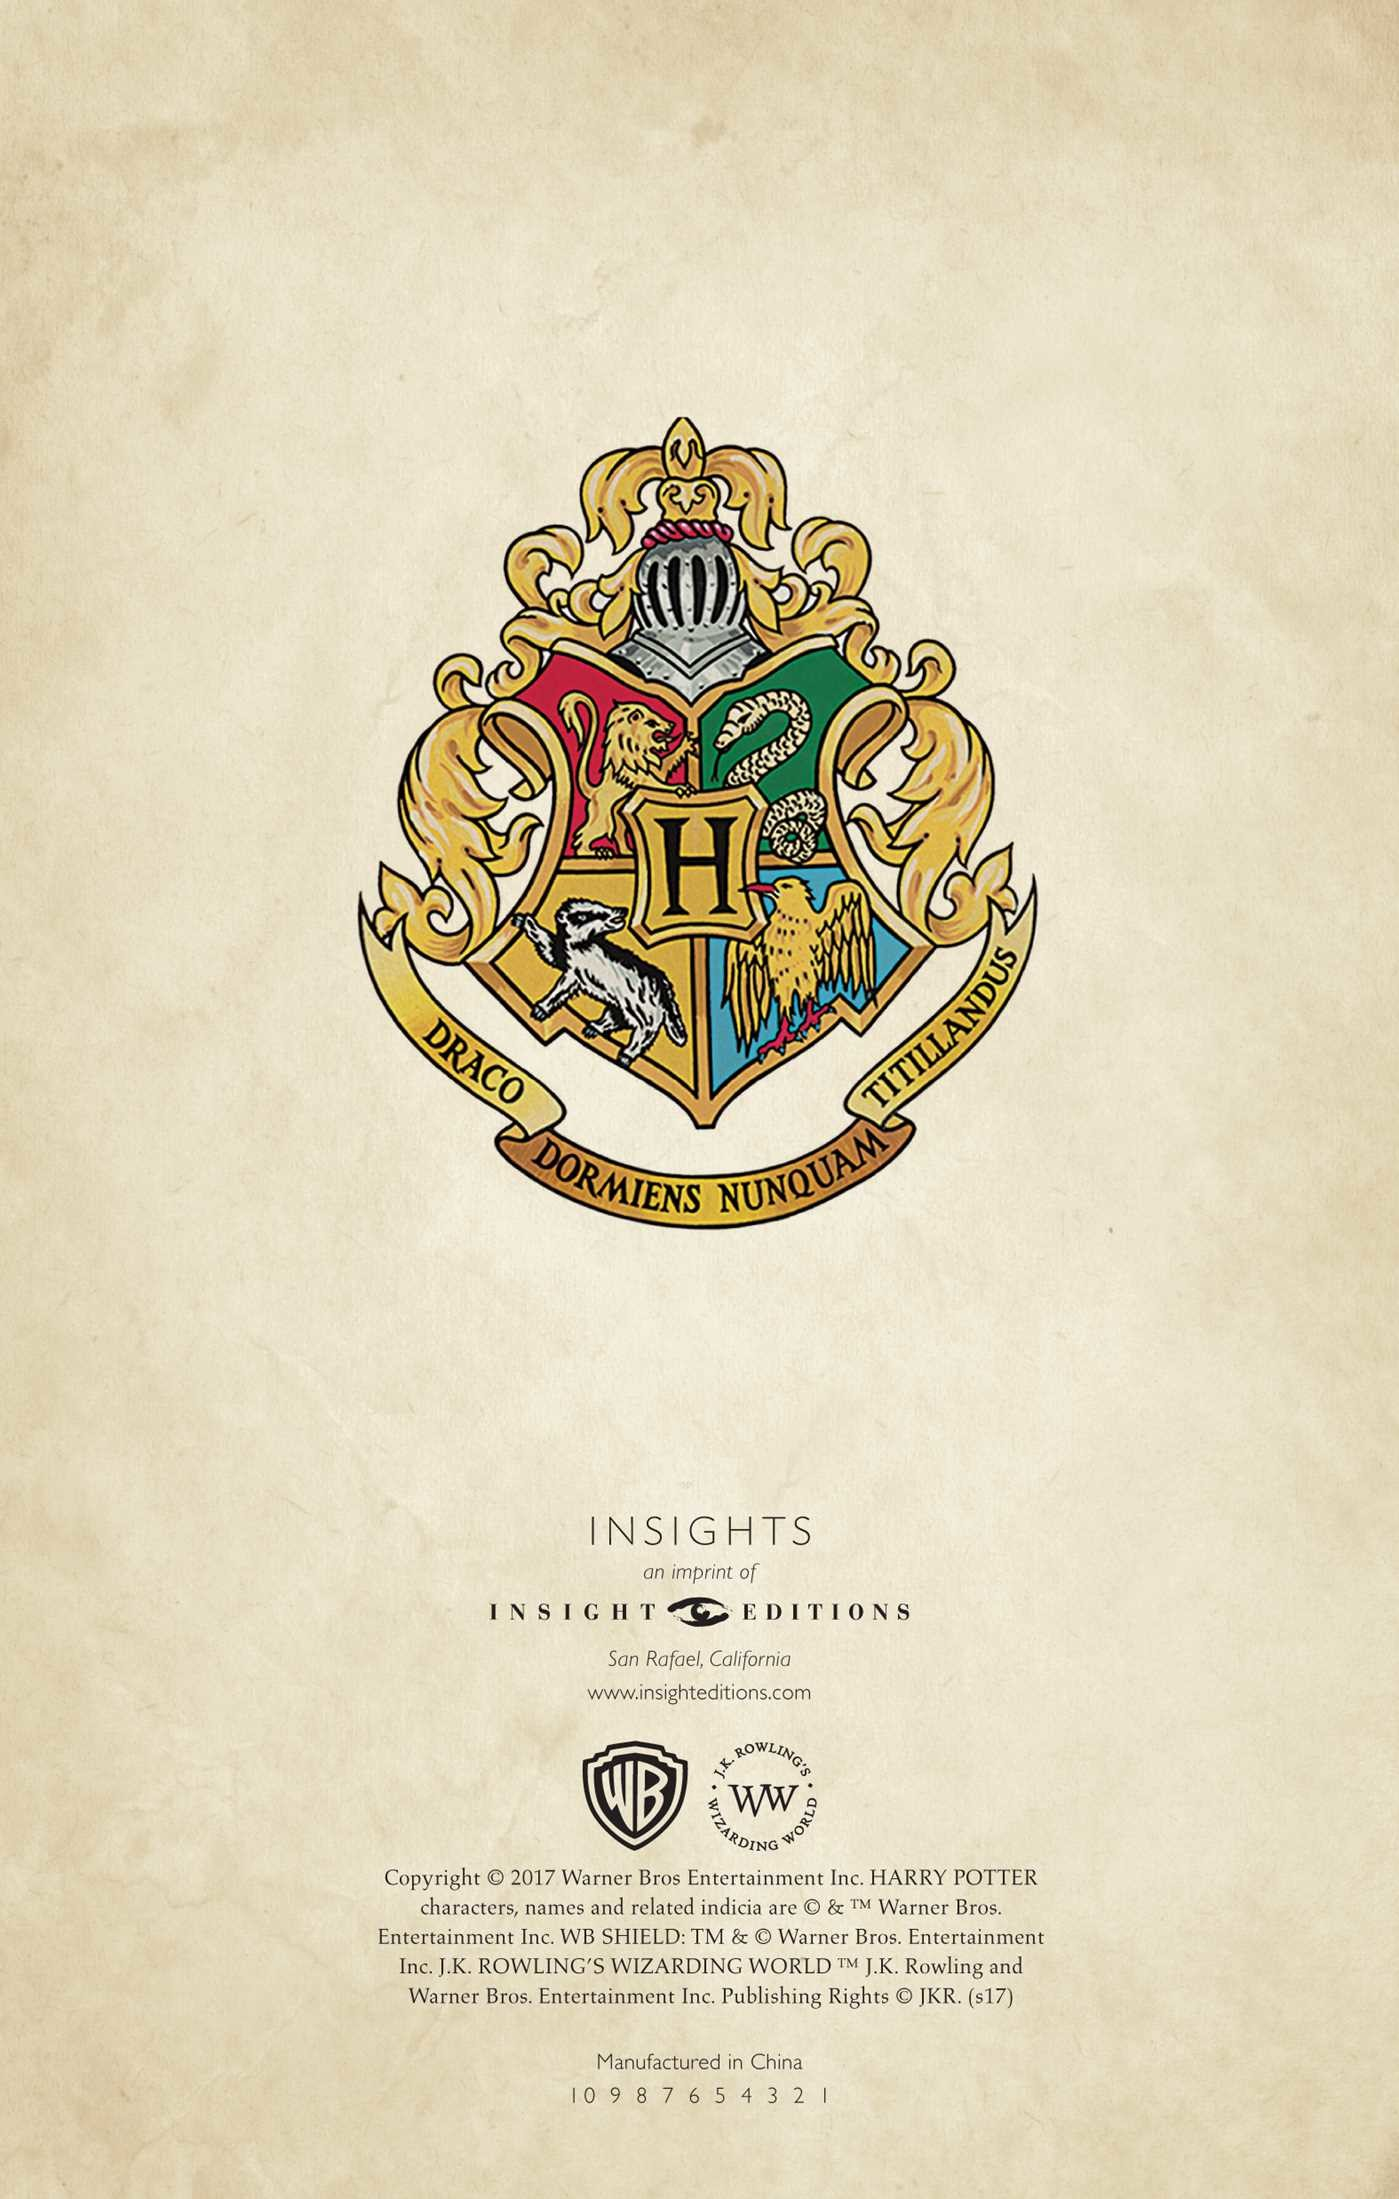 Harry Potter Hogwarts Ruled Notebook Book By Insight Editions